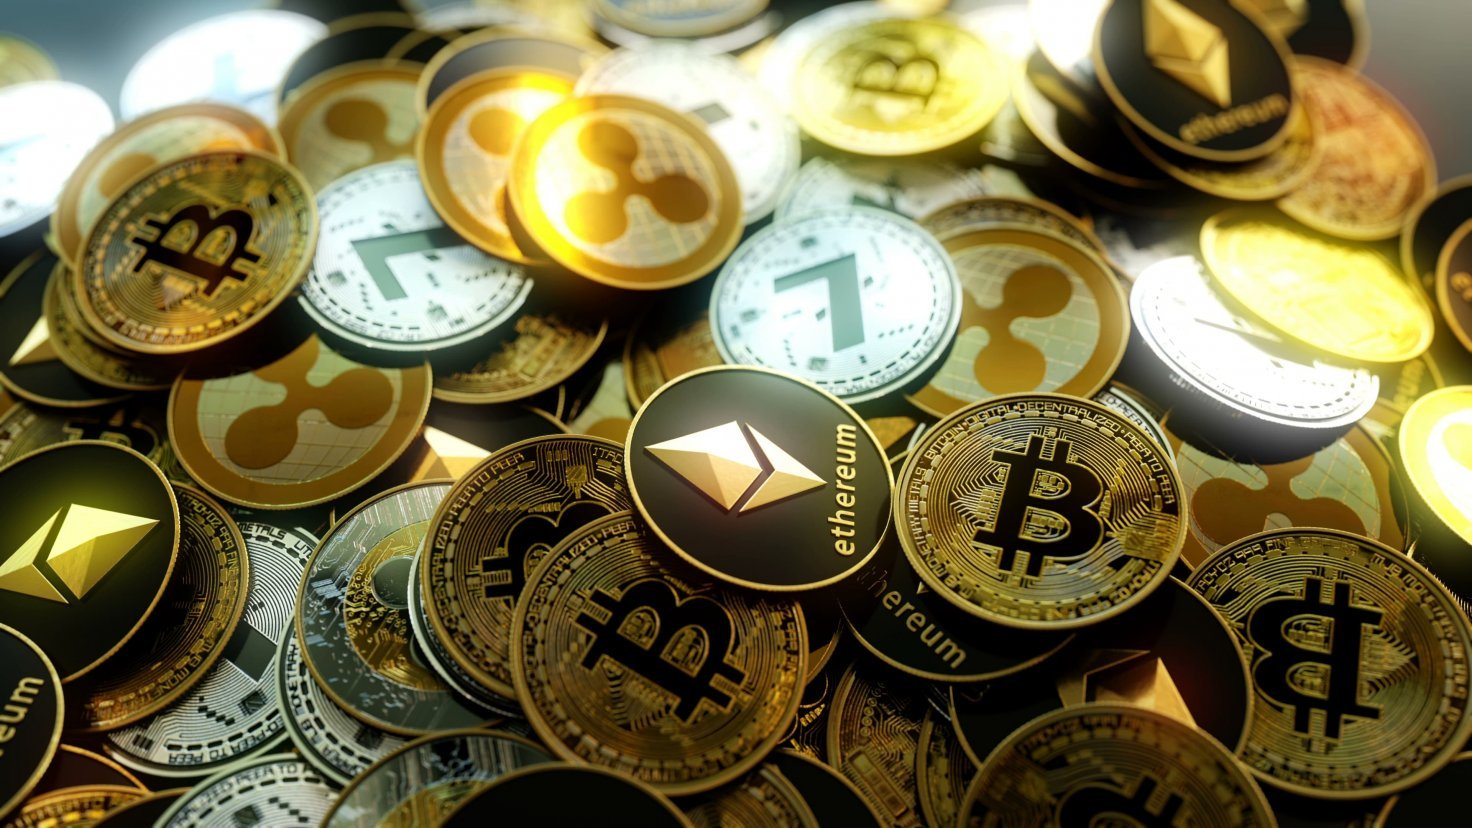 cryptocurrencies will cause the next financial crisis22